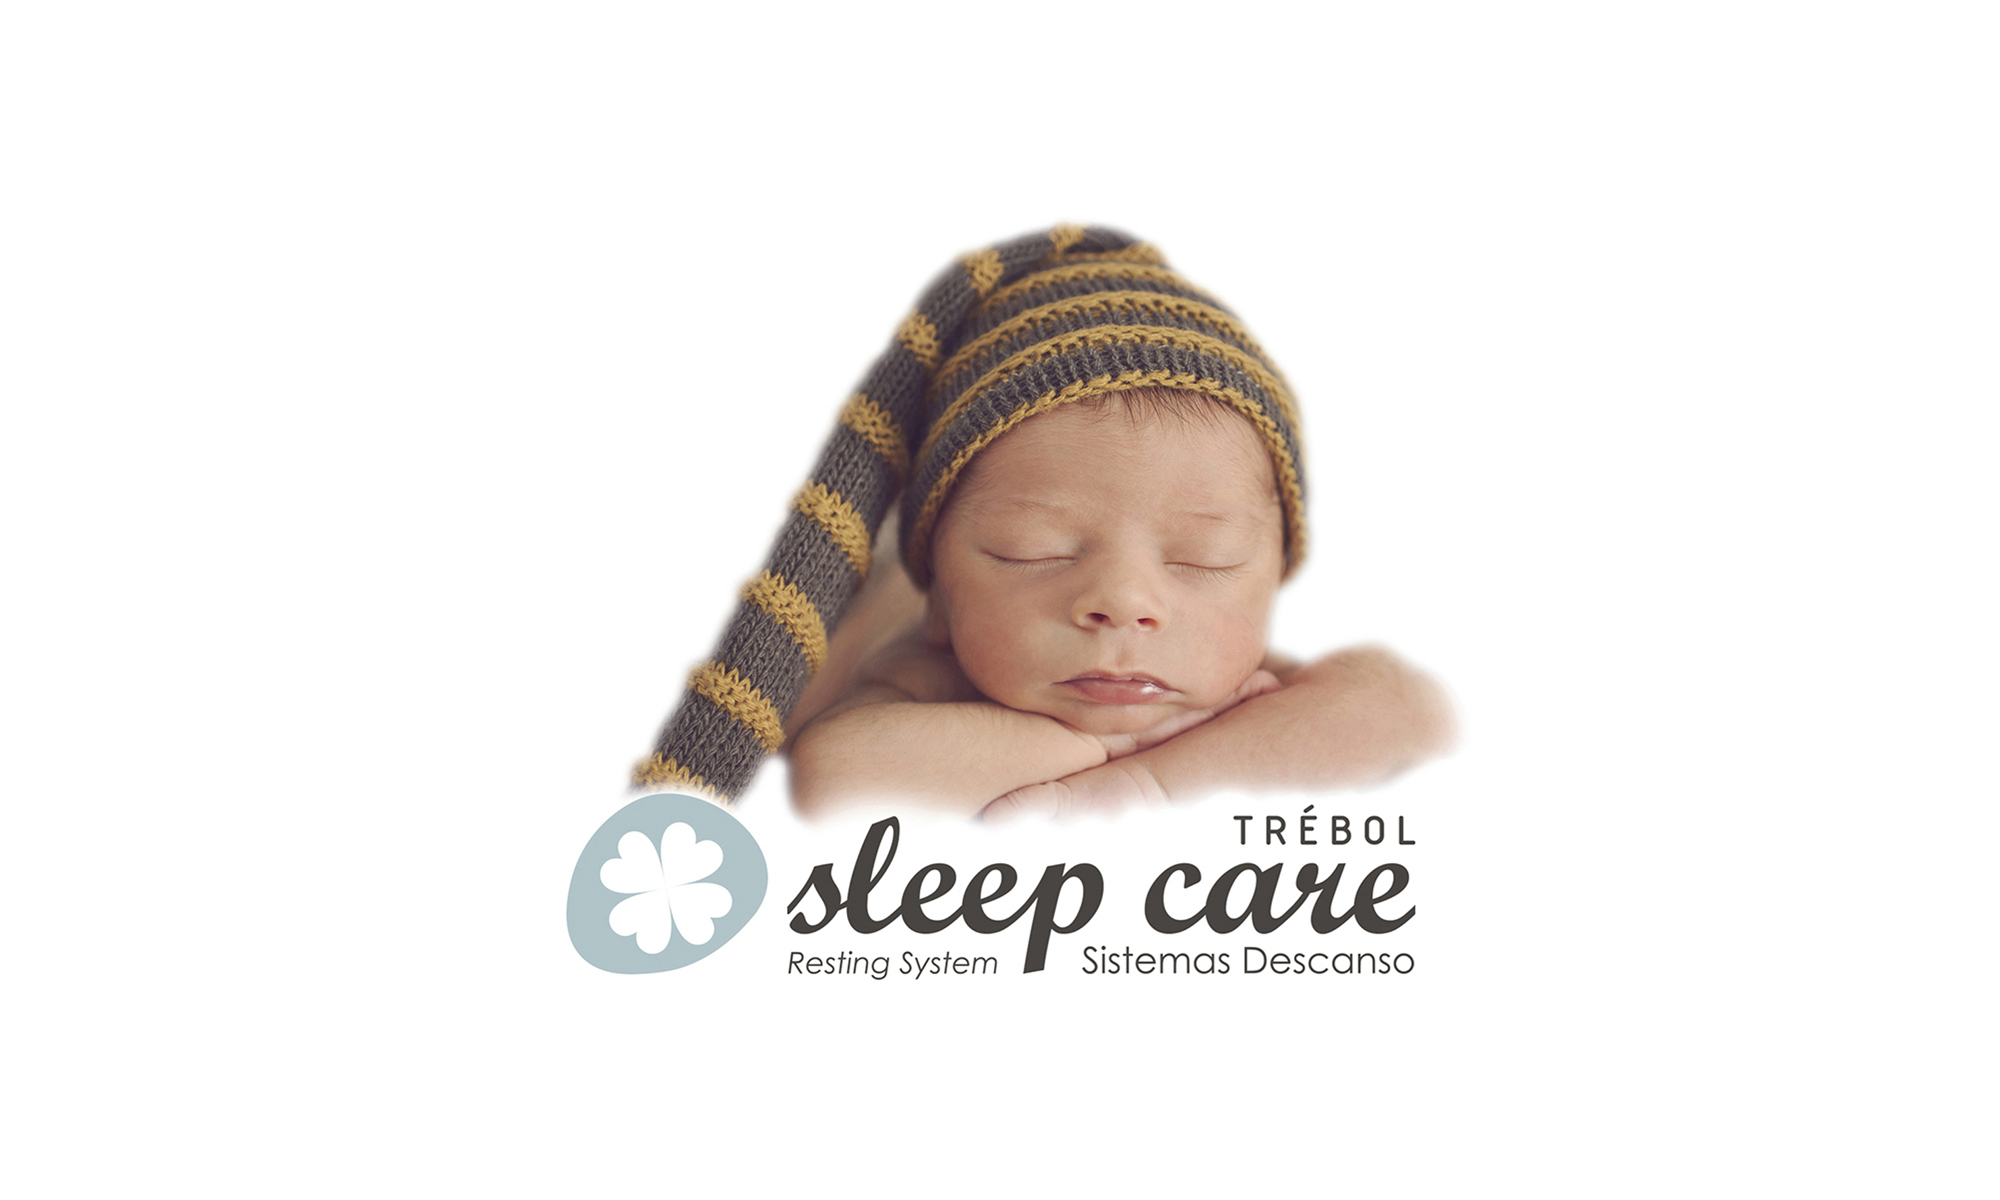 Trébol Sleep Care